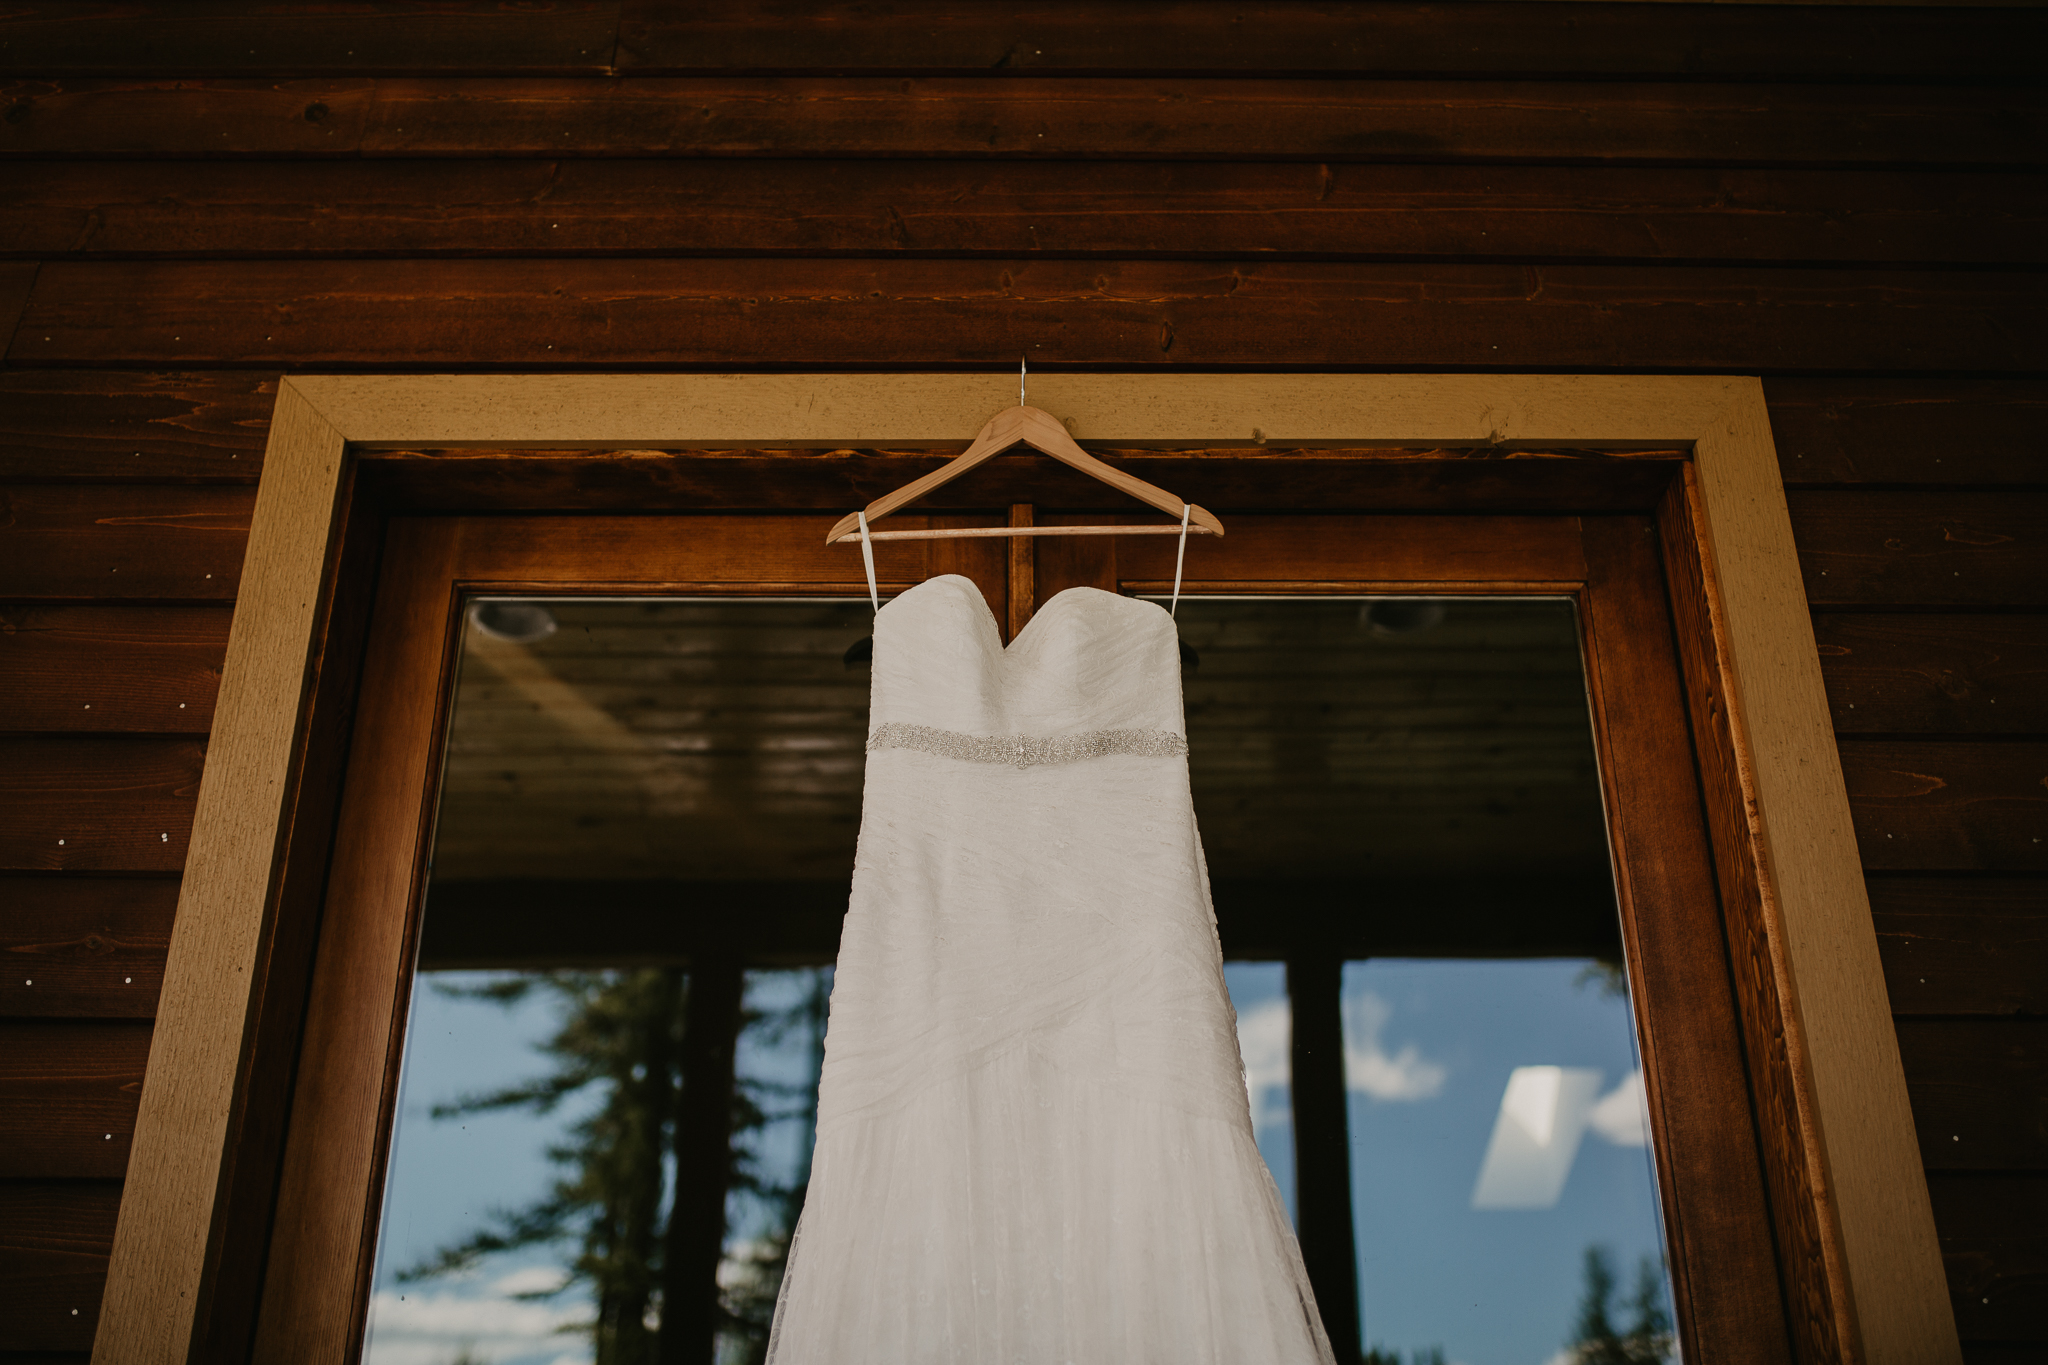 Wedding dress detail shot hung at a rustic log cabin.